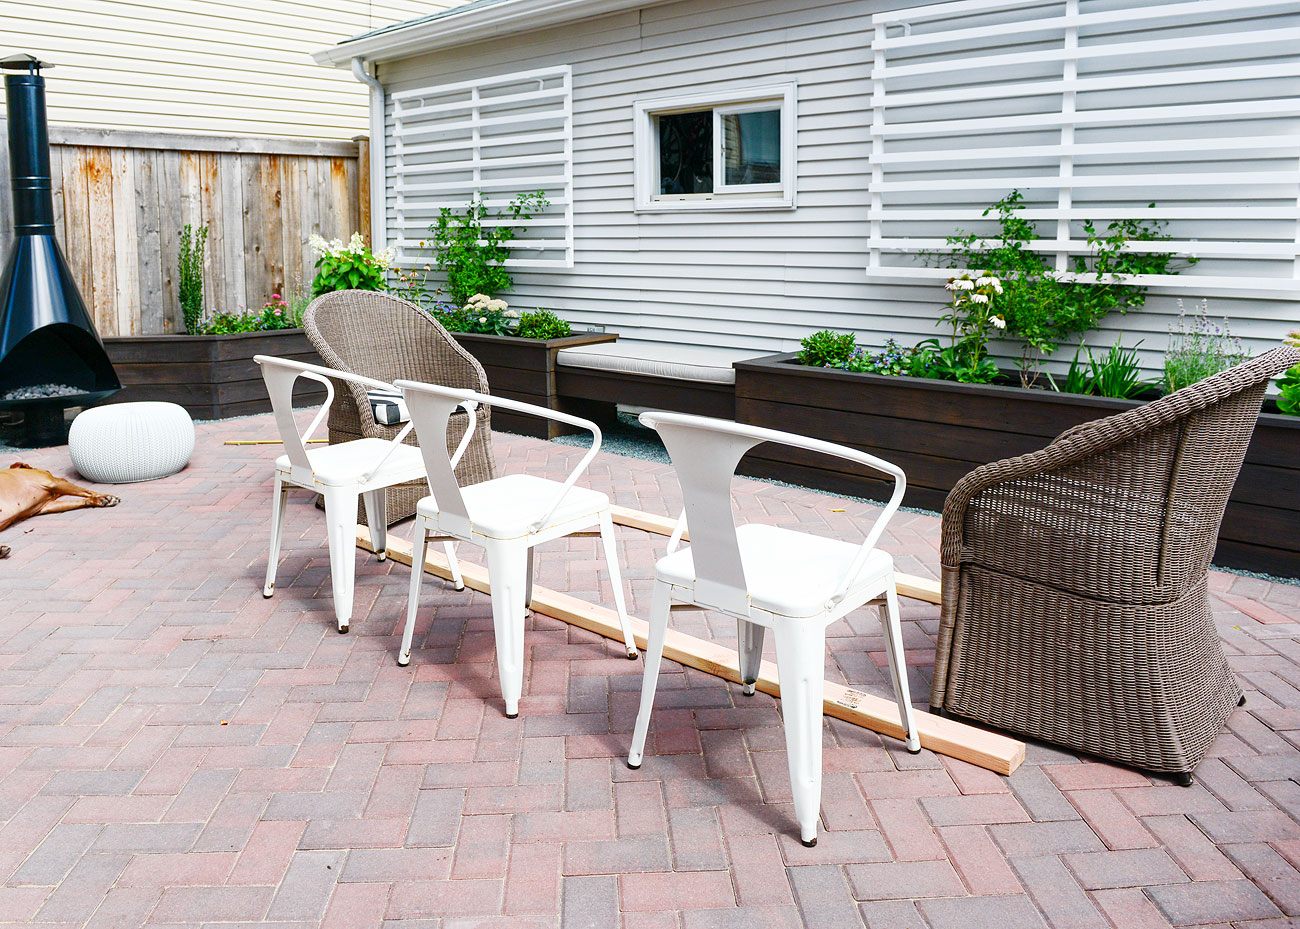 Best diy patio table